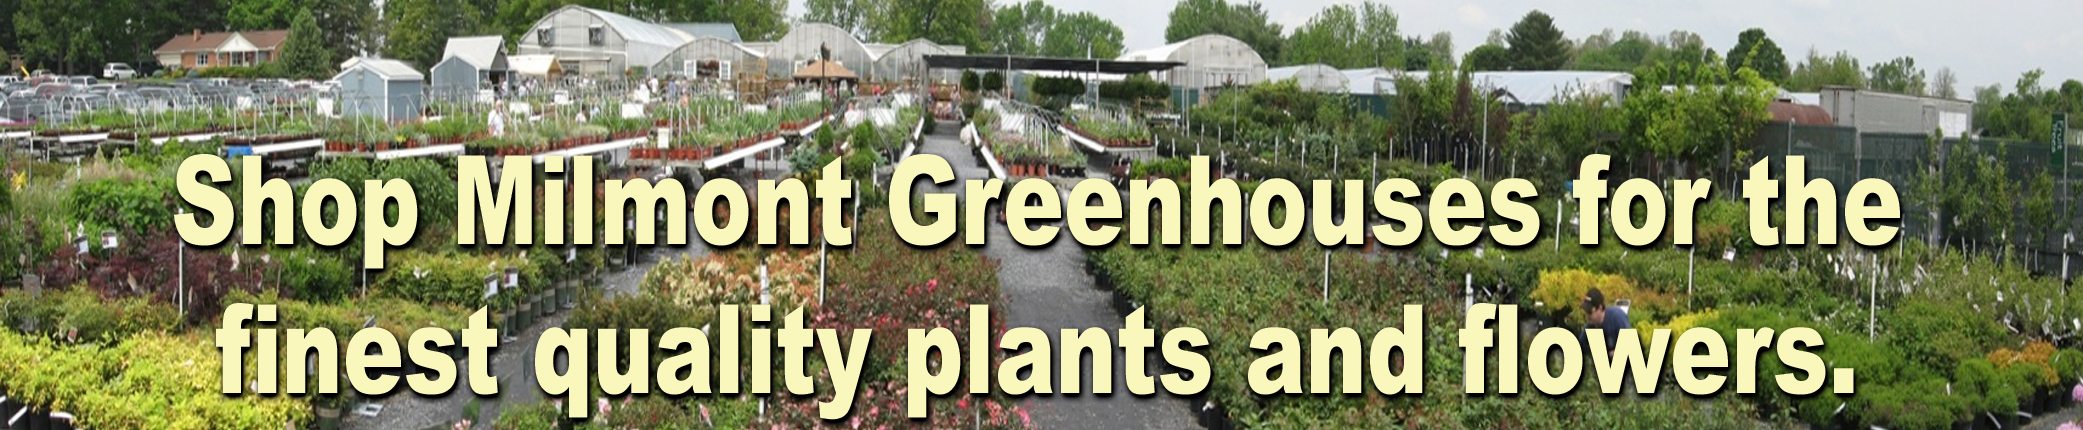 Unsurpassed Quality Plants and Flowers